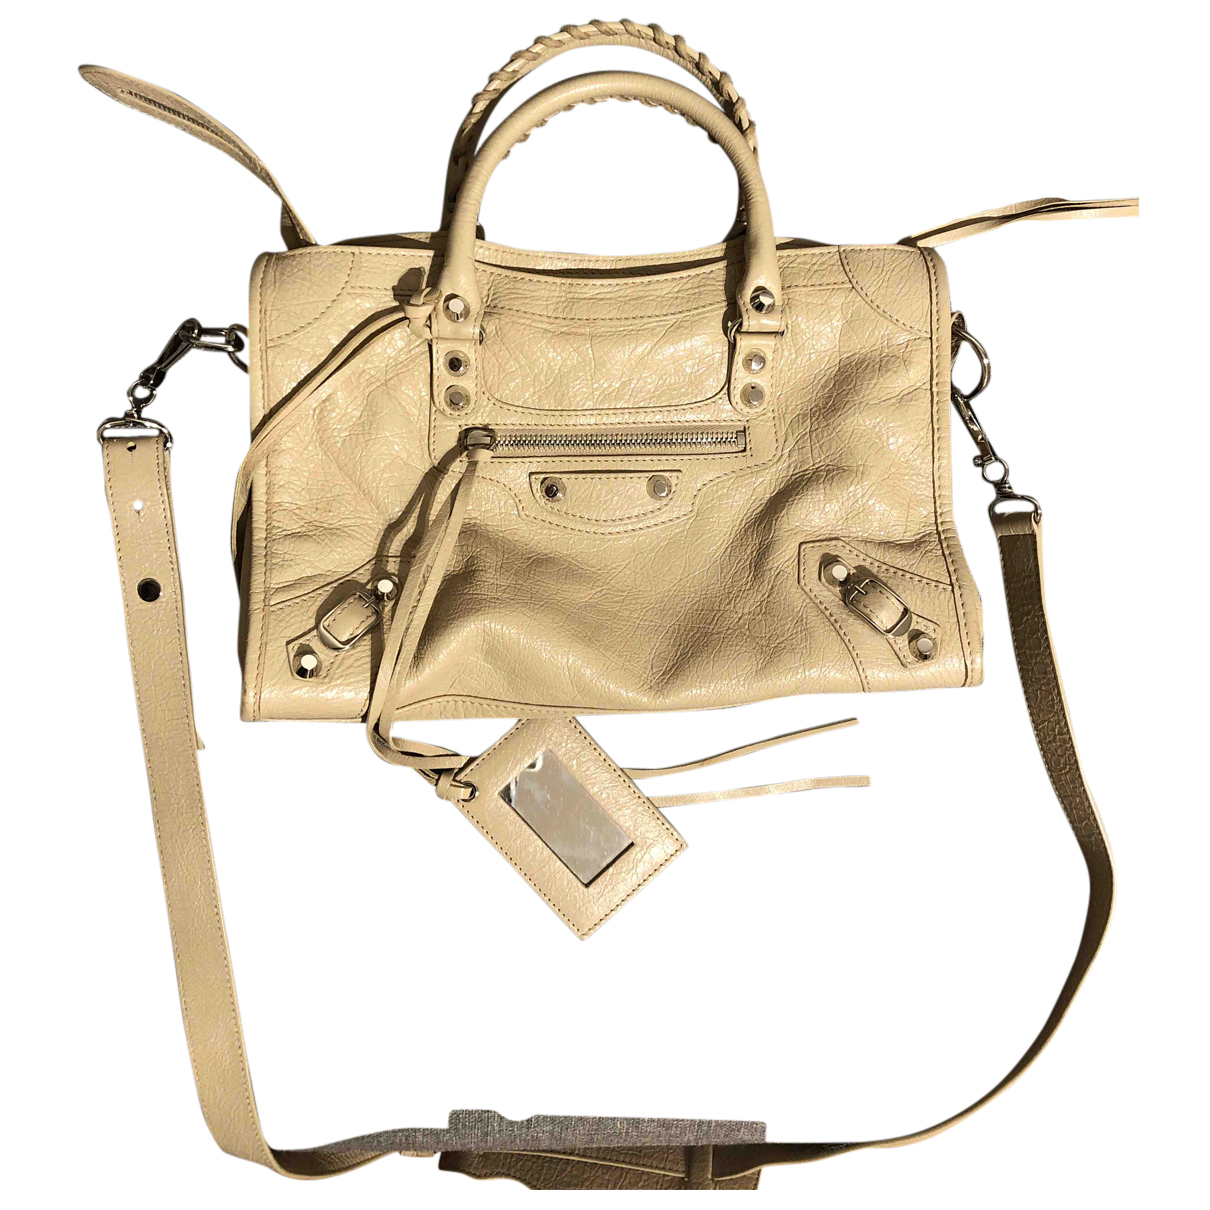 Balenciaga City Beige Leather handbag for Women N